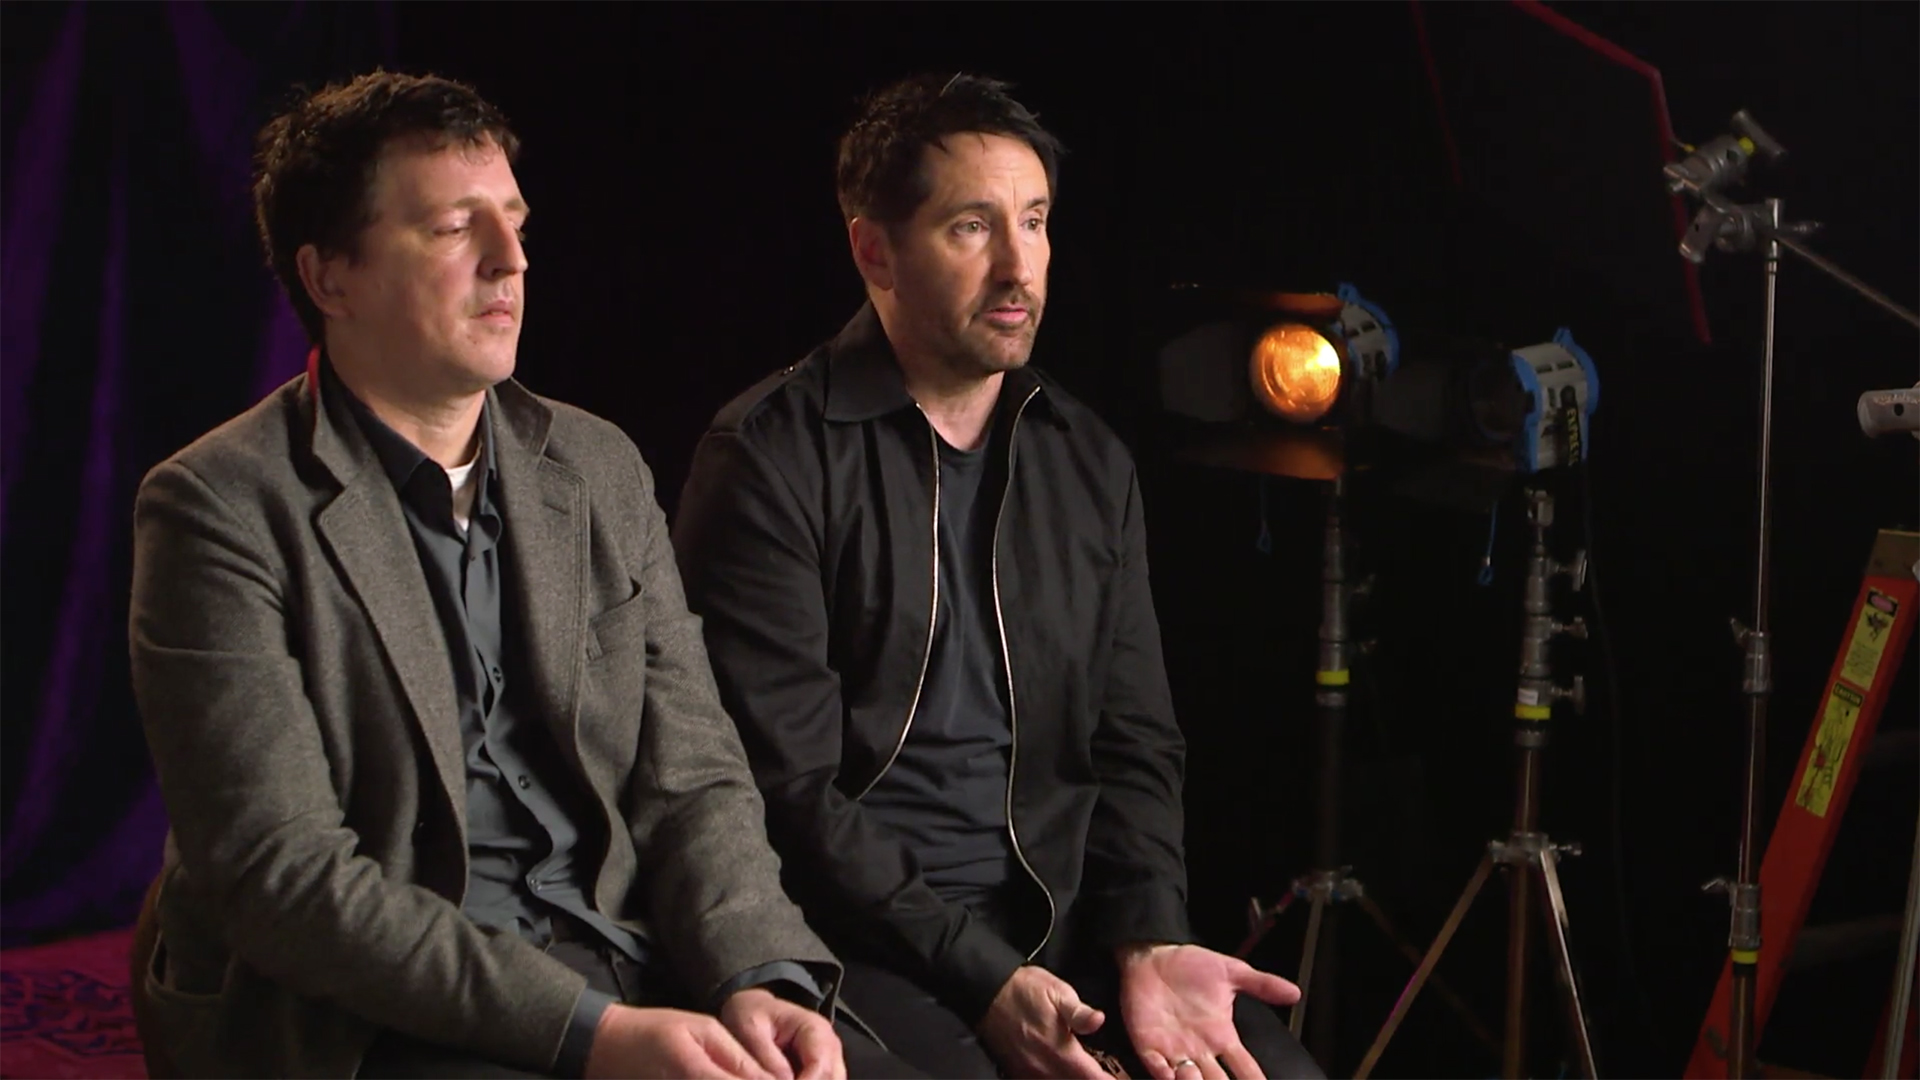 Trent Reznor & Atticus Ross | Composing The Score